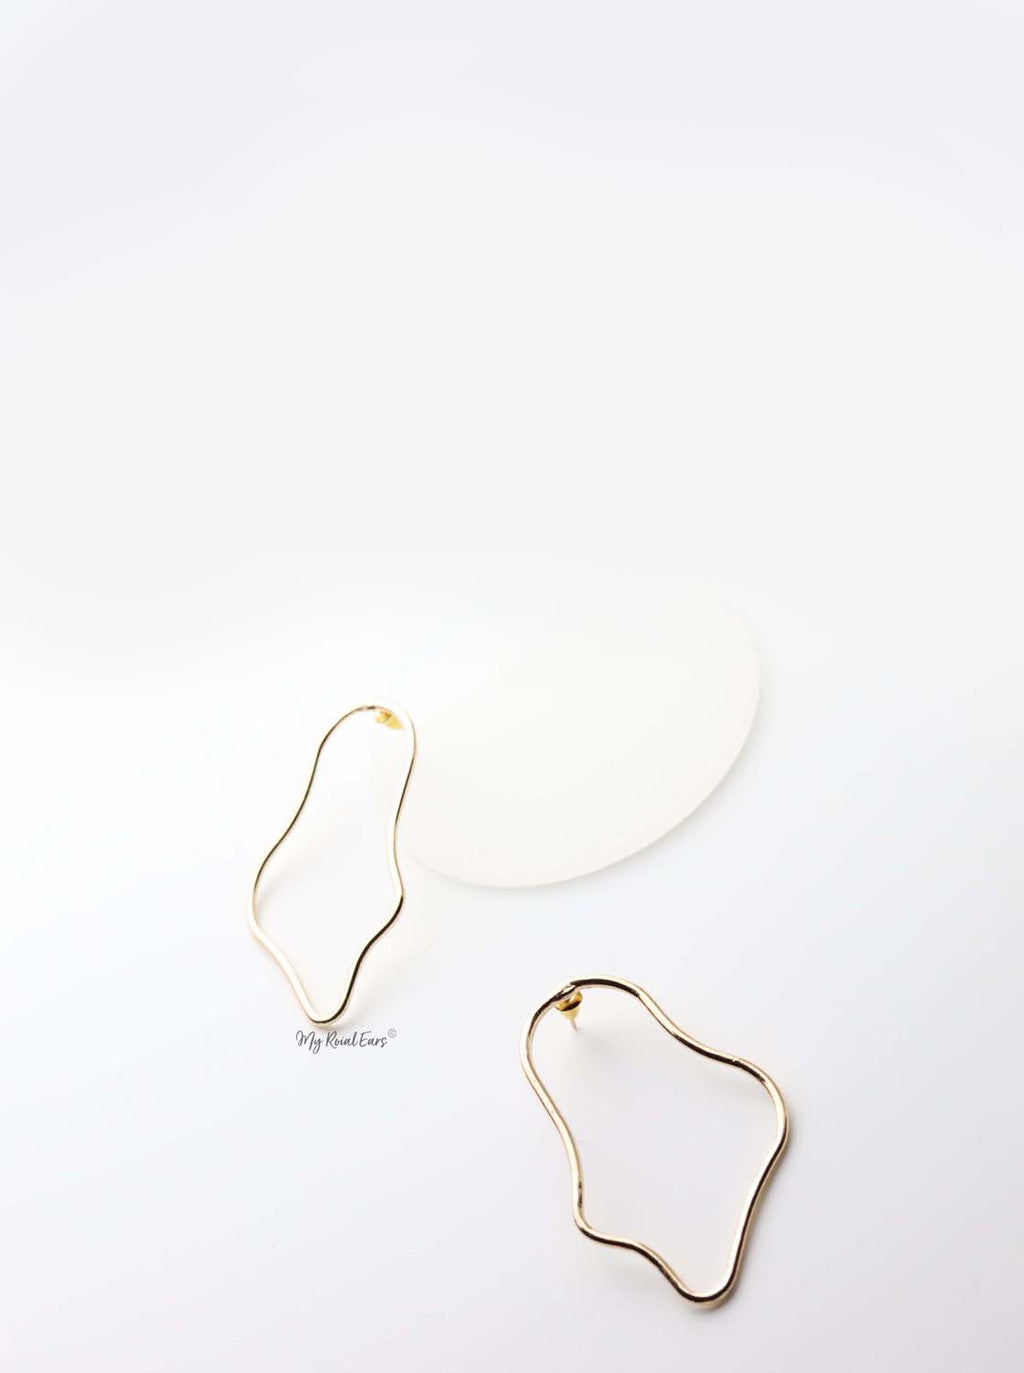 Jocasta- gold plated geometric abstract statement stud earrings - My Roial Ears LTD